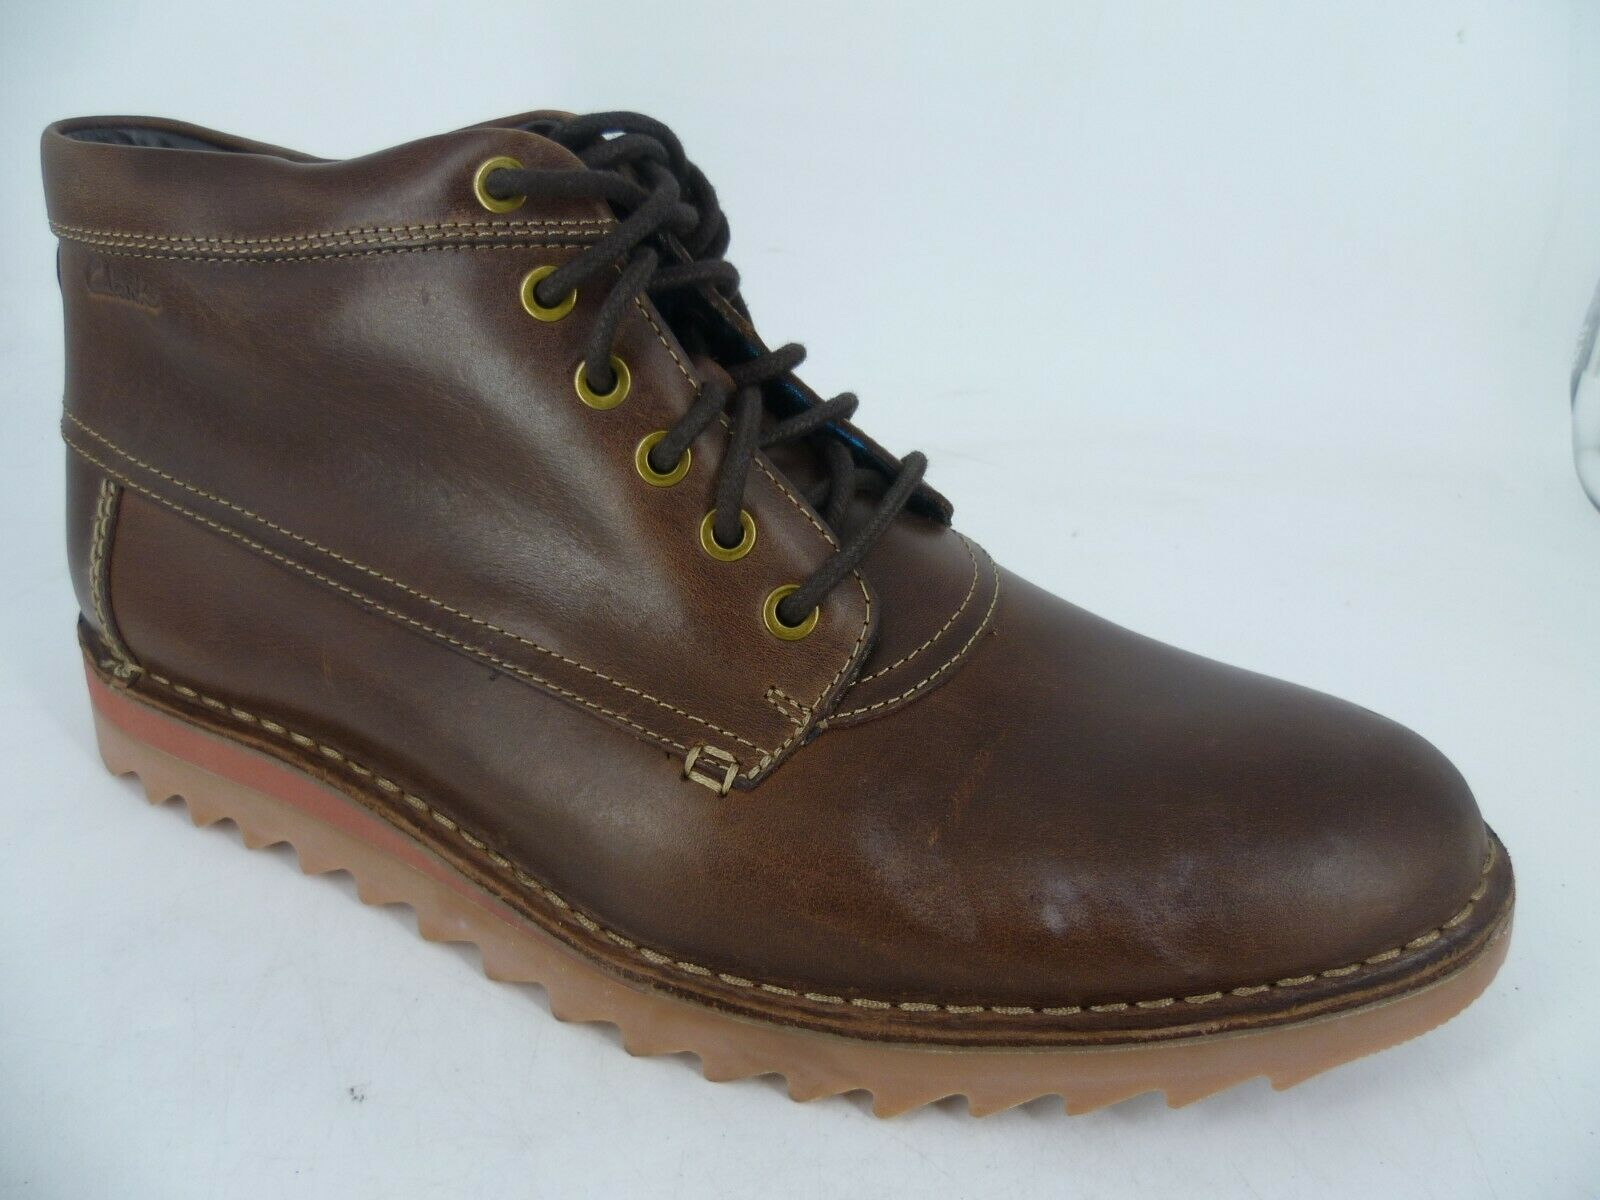 Clarks Newby Jump Mens Lace Up Ankle Boots Brown UK 10 EU 44 G fit LN096 GG 03